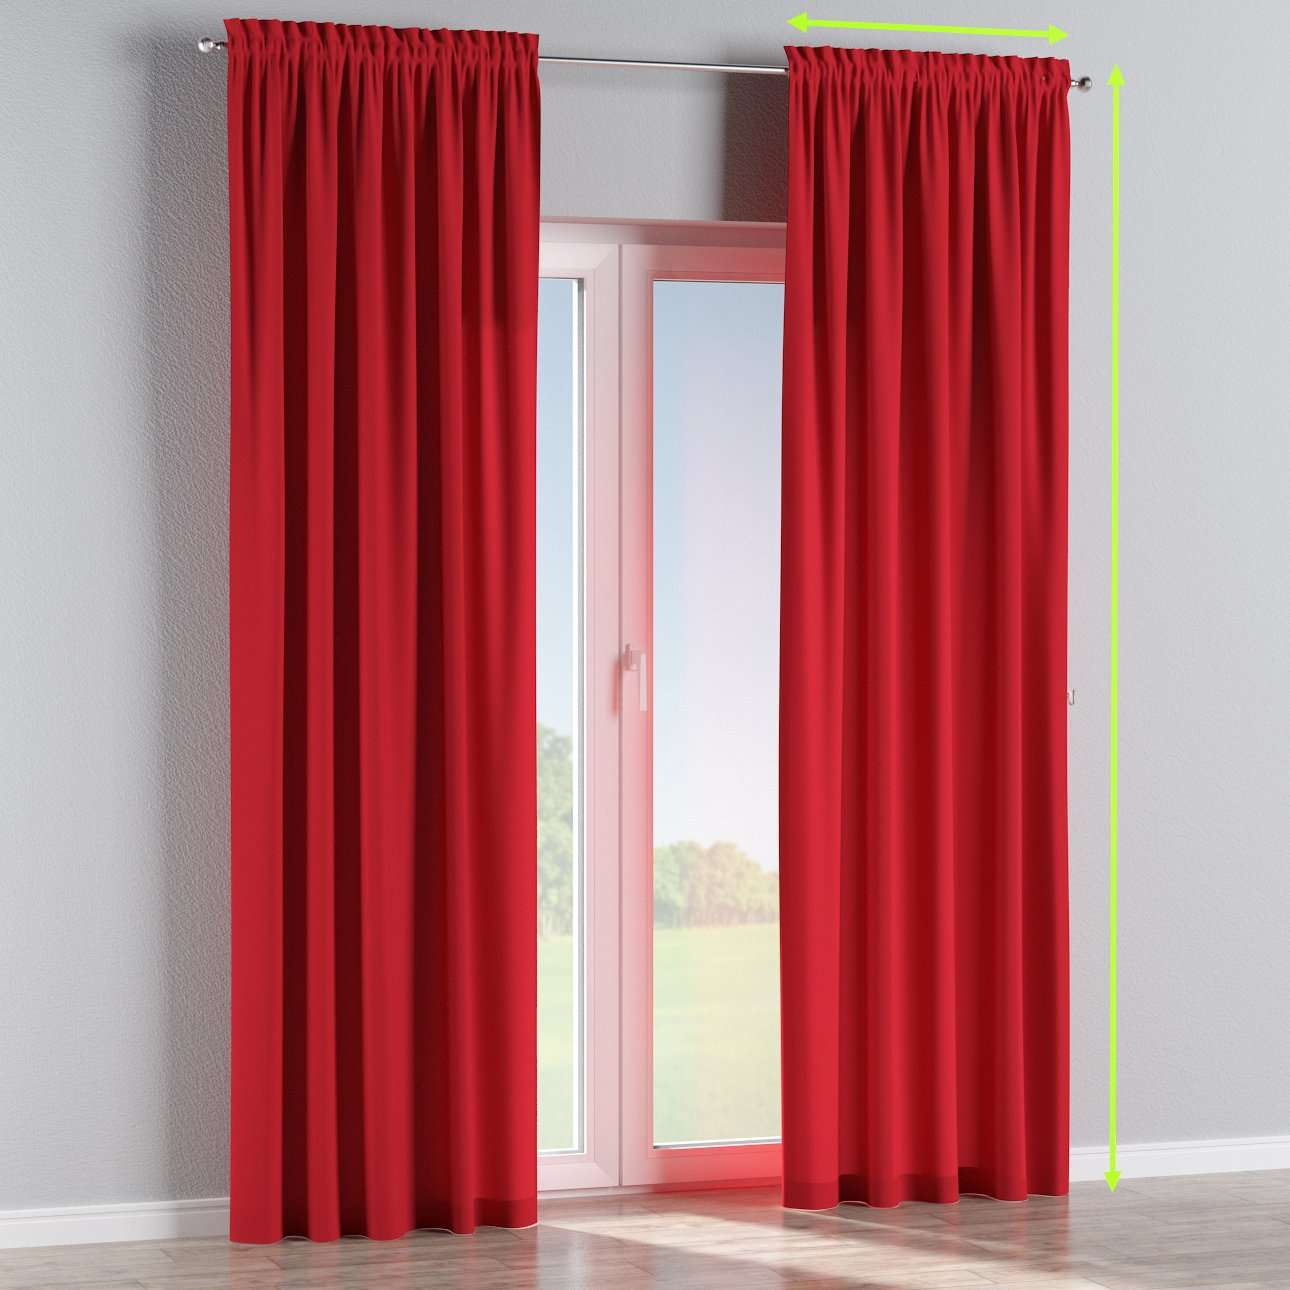 Slot and frill curtains in collection Cotton Panama, fabric: 702-04